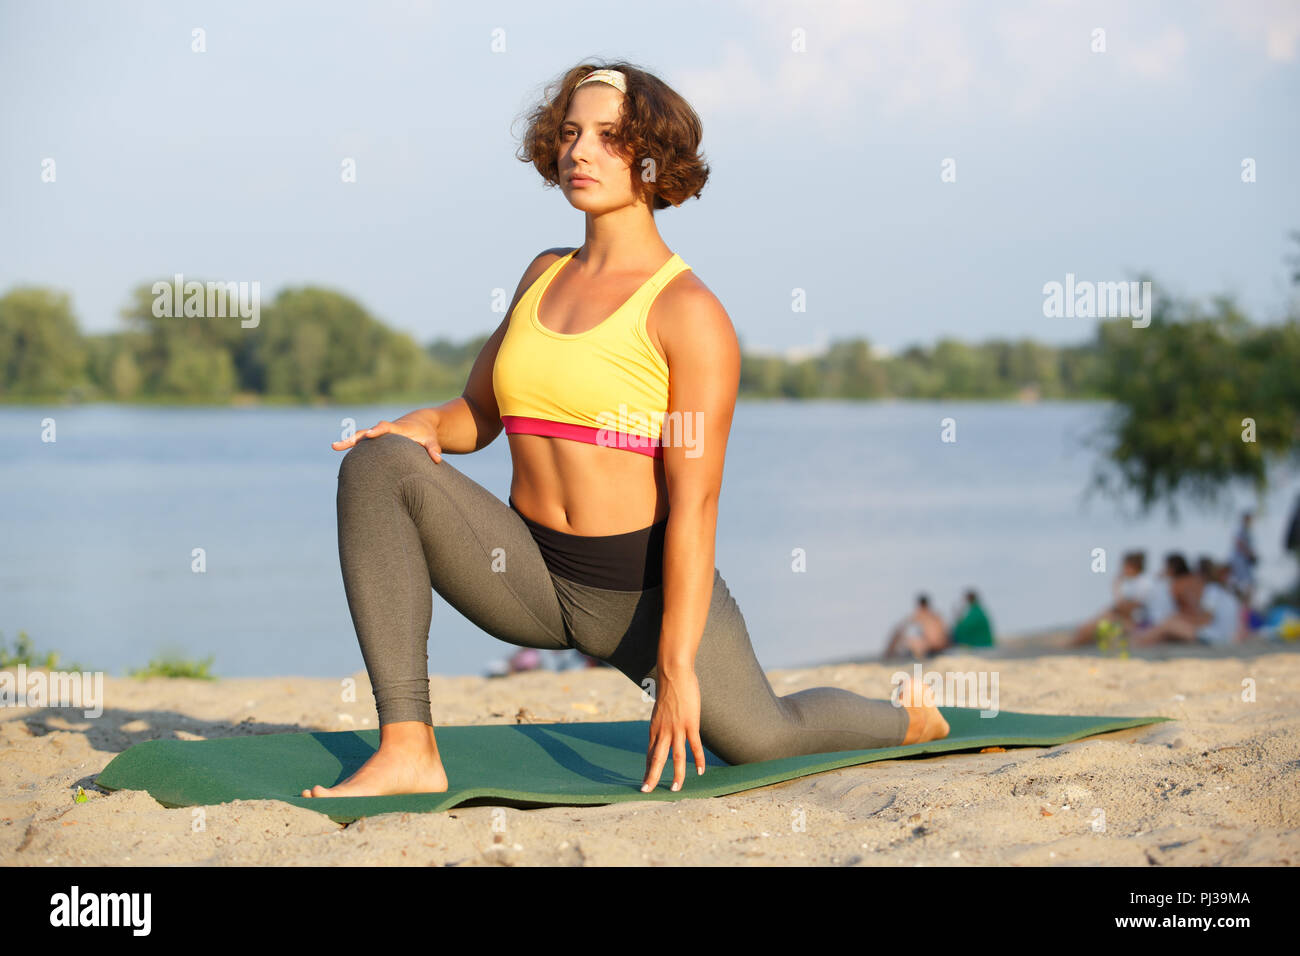 dc99b1a5f4 Pretty young girl doung yoga on mat on the beach at sunset.Beautiful white  woman